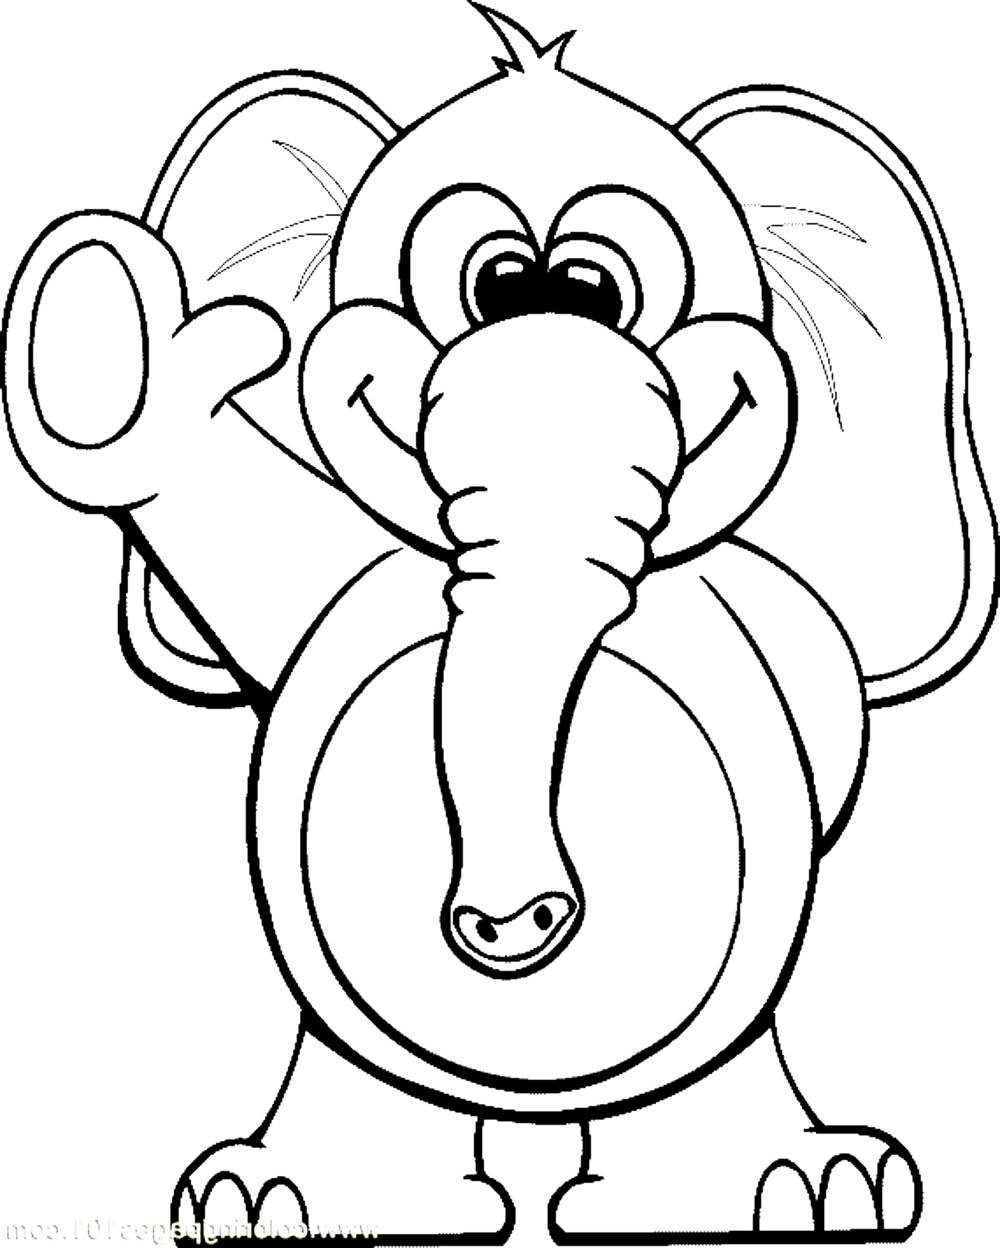 elephants coloring pages elephant shape with patterns elephants adult coloring pages coloring elephants pages